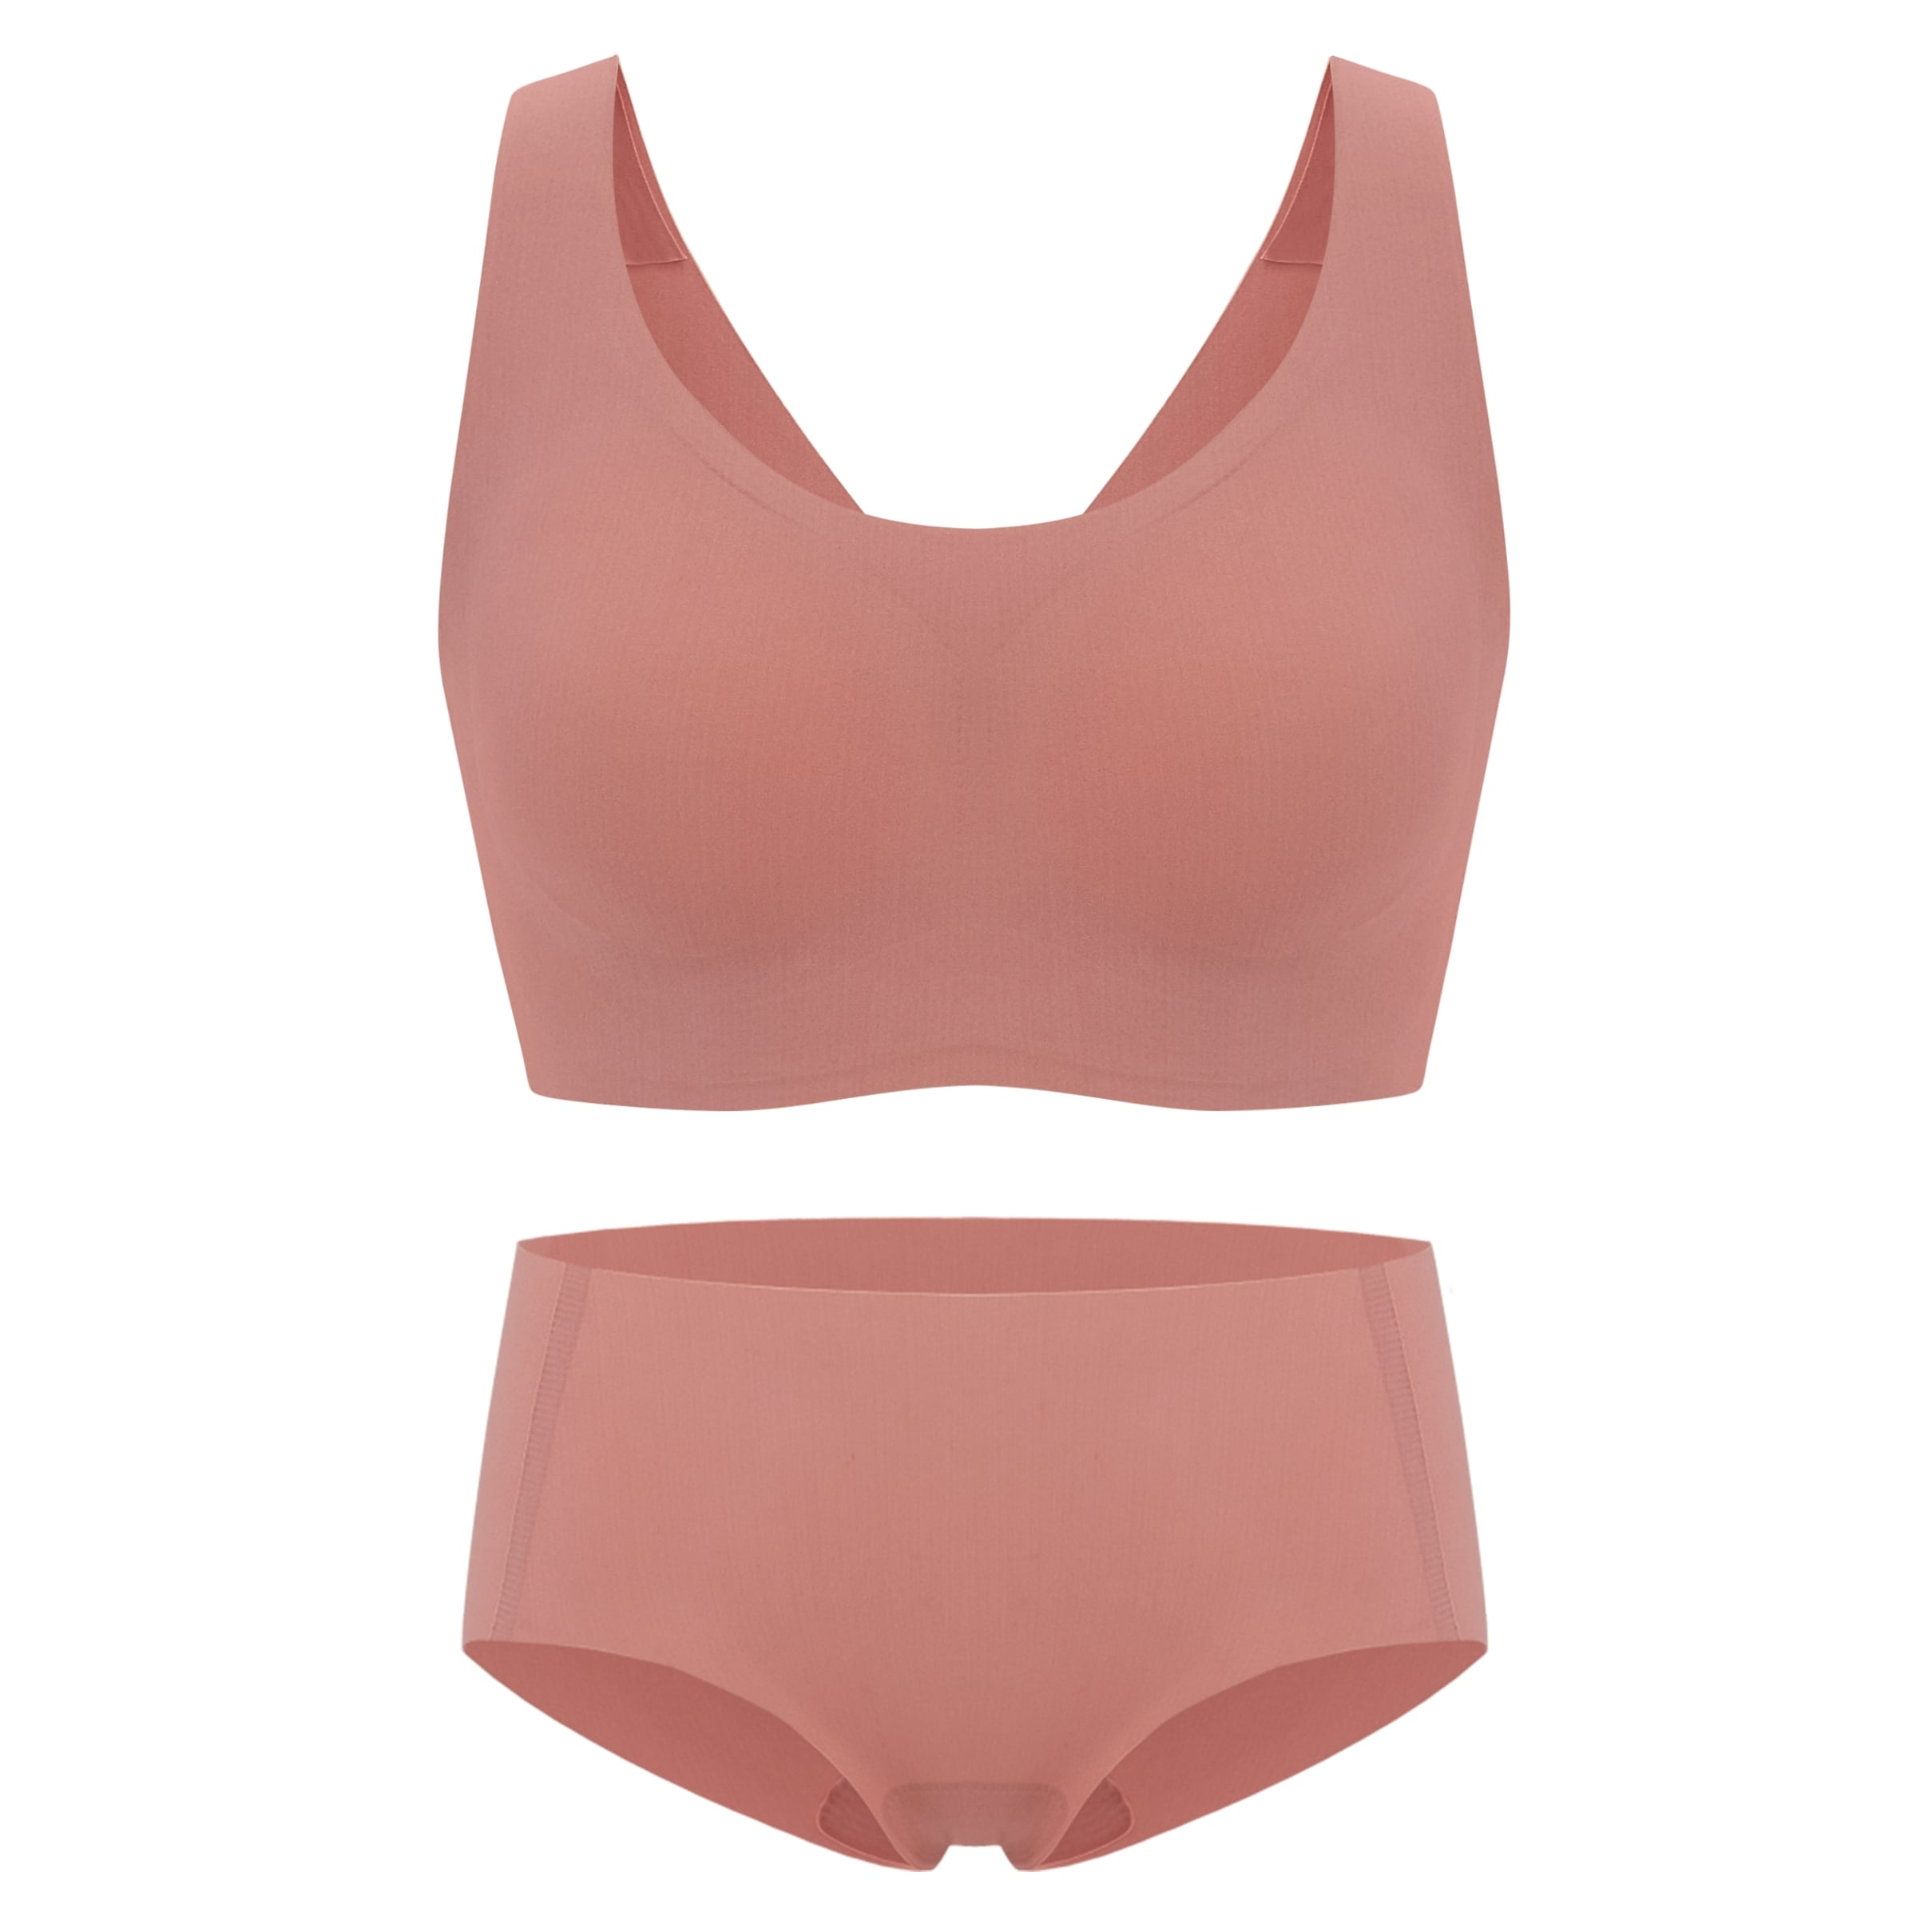 Barely Zero® Your-Size-Is-The-Size Wireless Bra + Brief Set Bundle